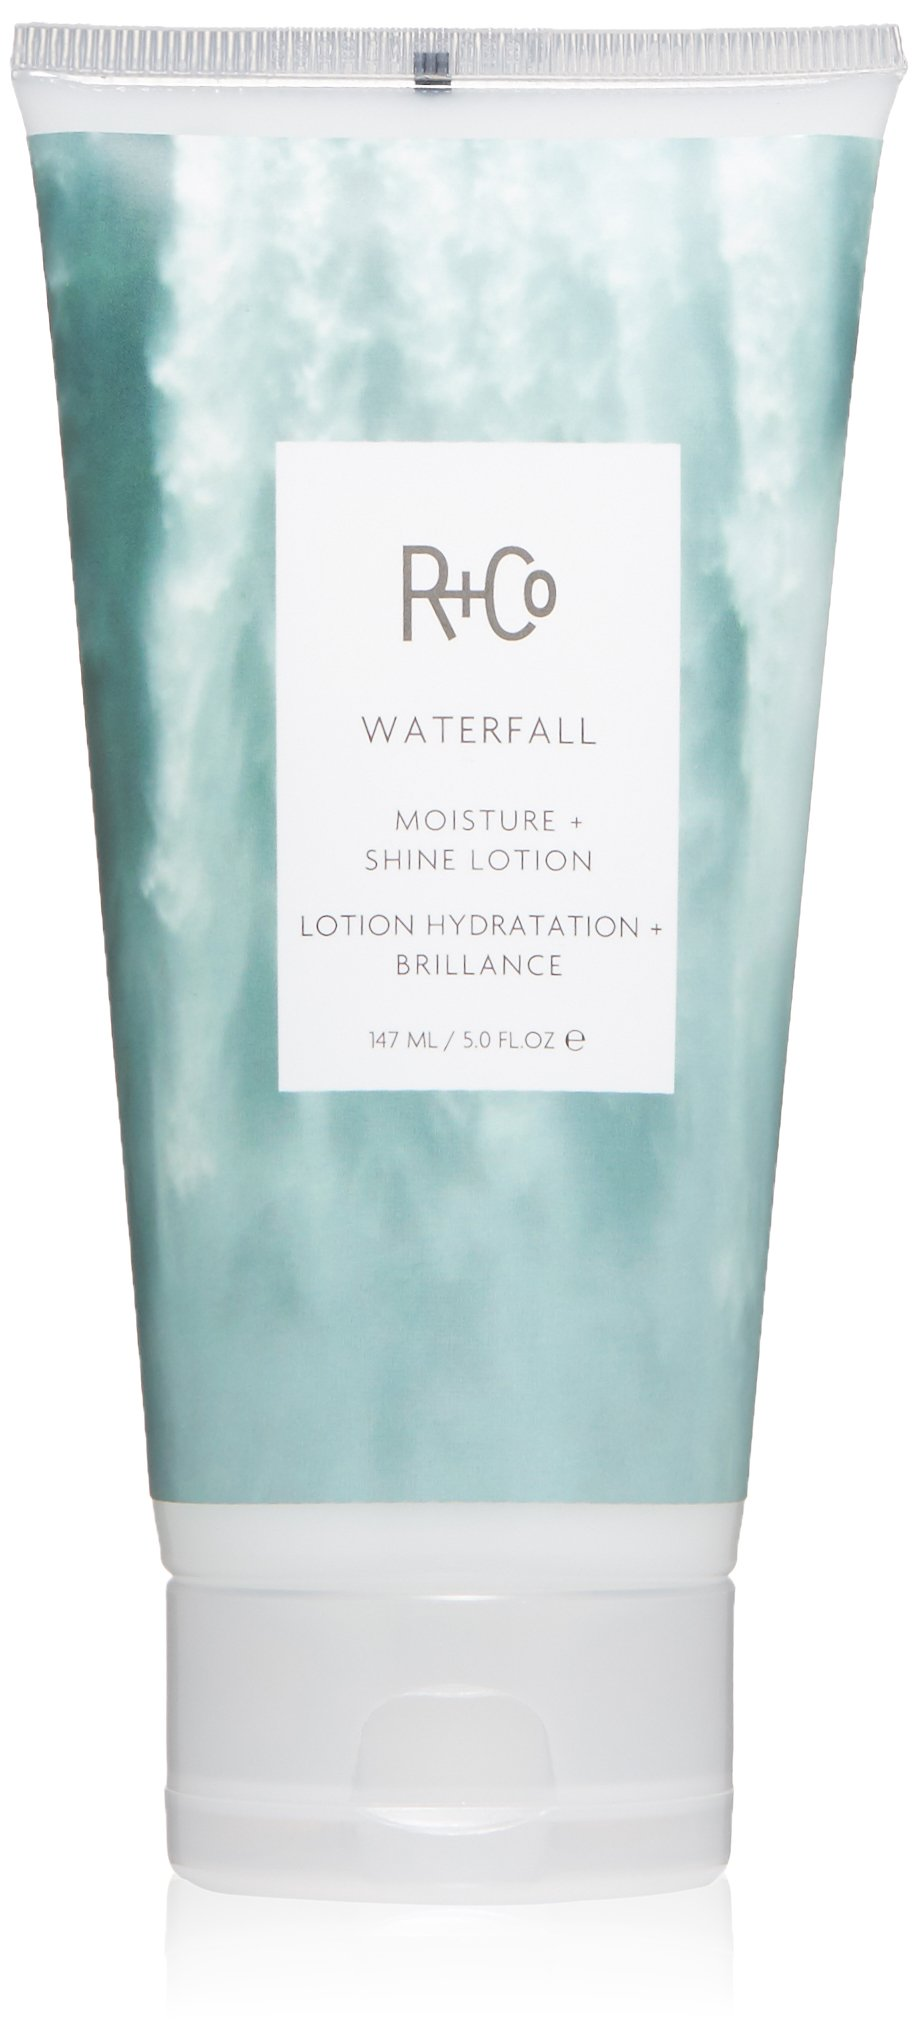 R+Co Waterfall Moisture + Shine Lotion, 5 Fl Oz by R+Co